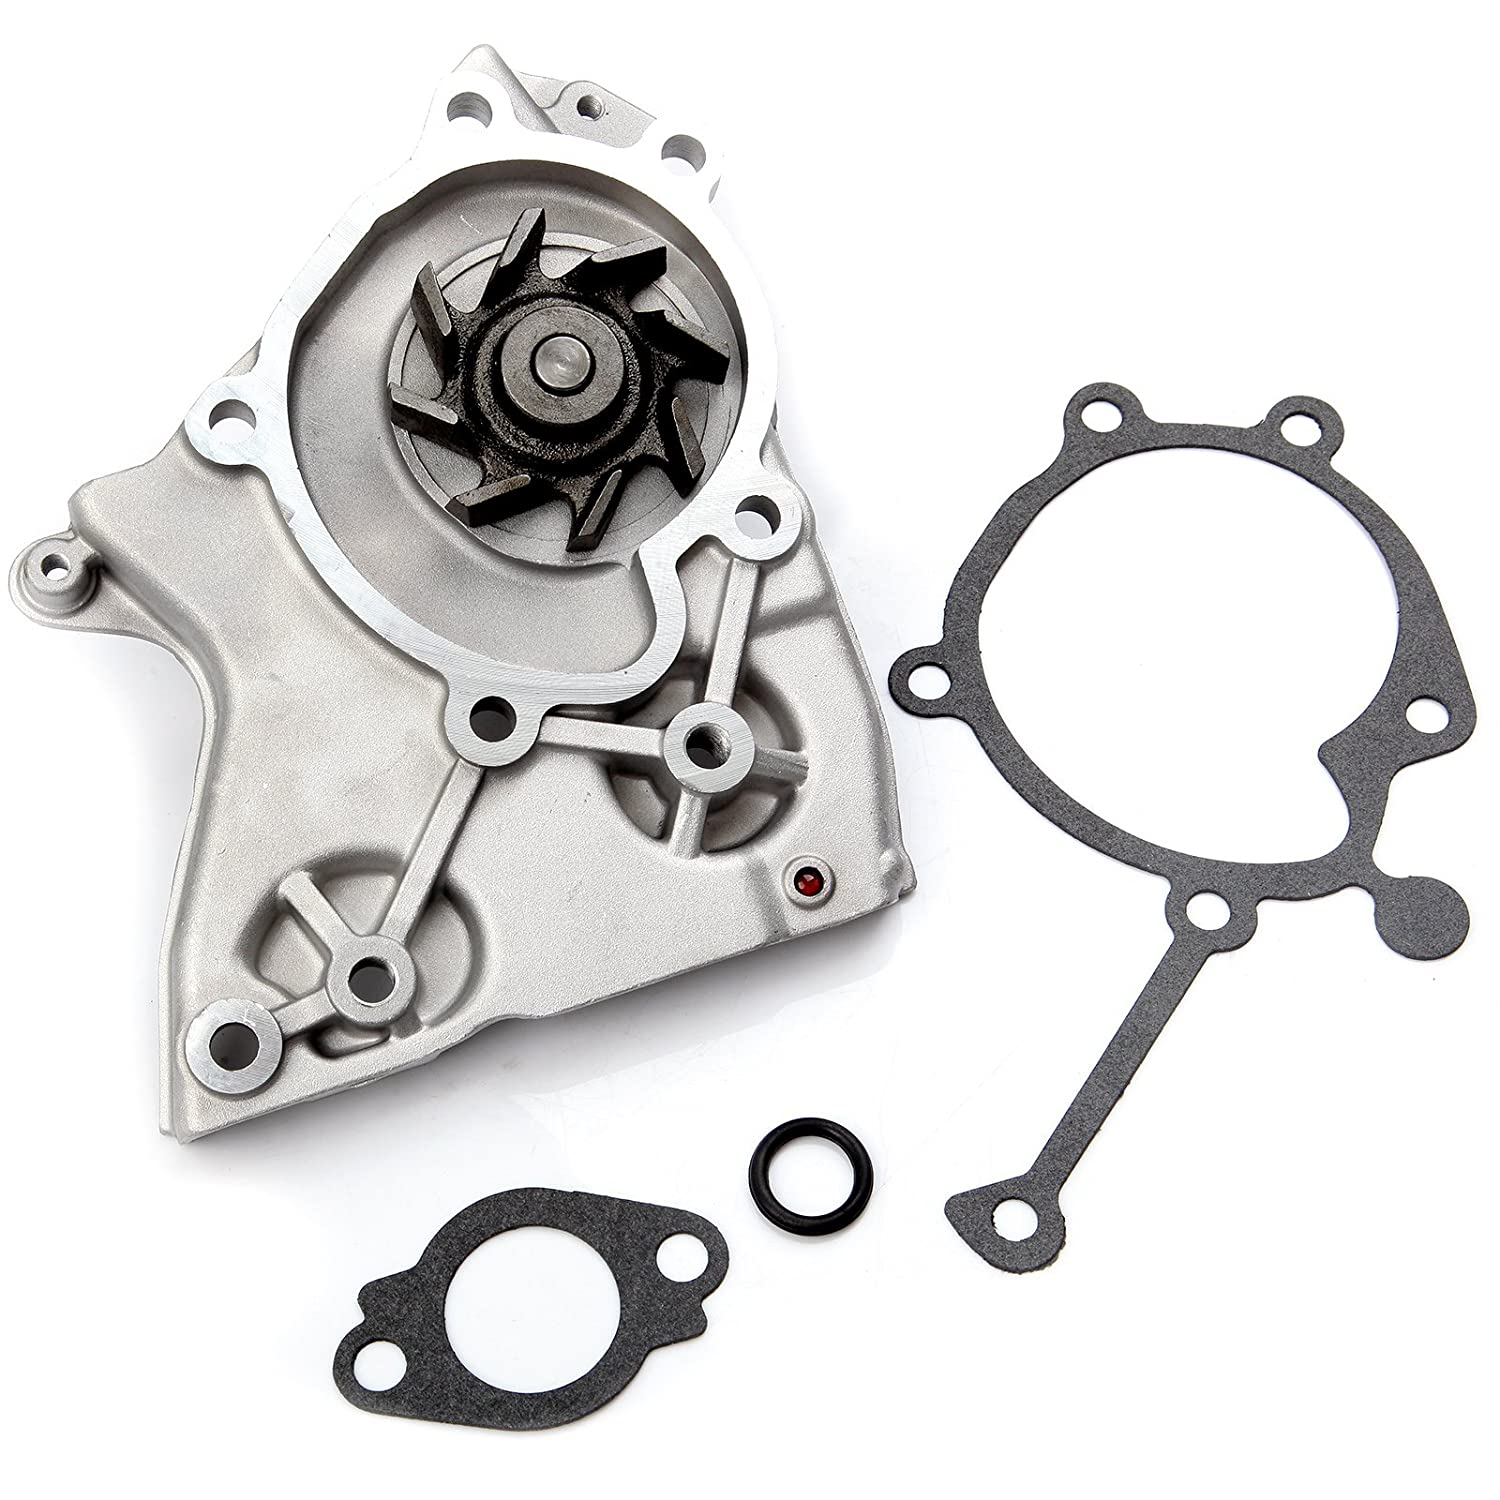 SCITOO Timing Belt Water Pump Gasket Tensioner Kit Fit 1995-2002 2.0L Kia Sportage DOHC 16V